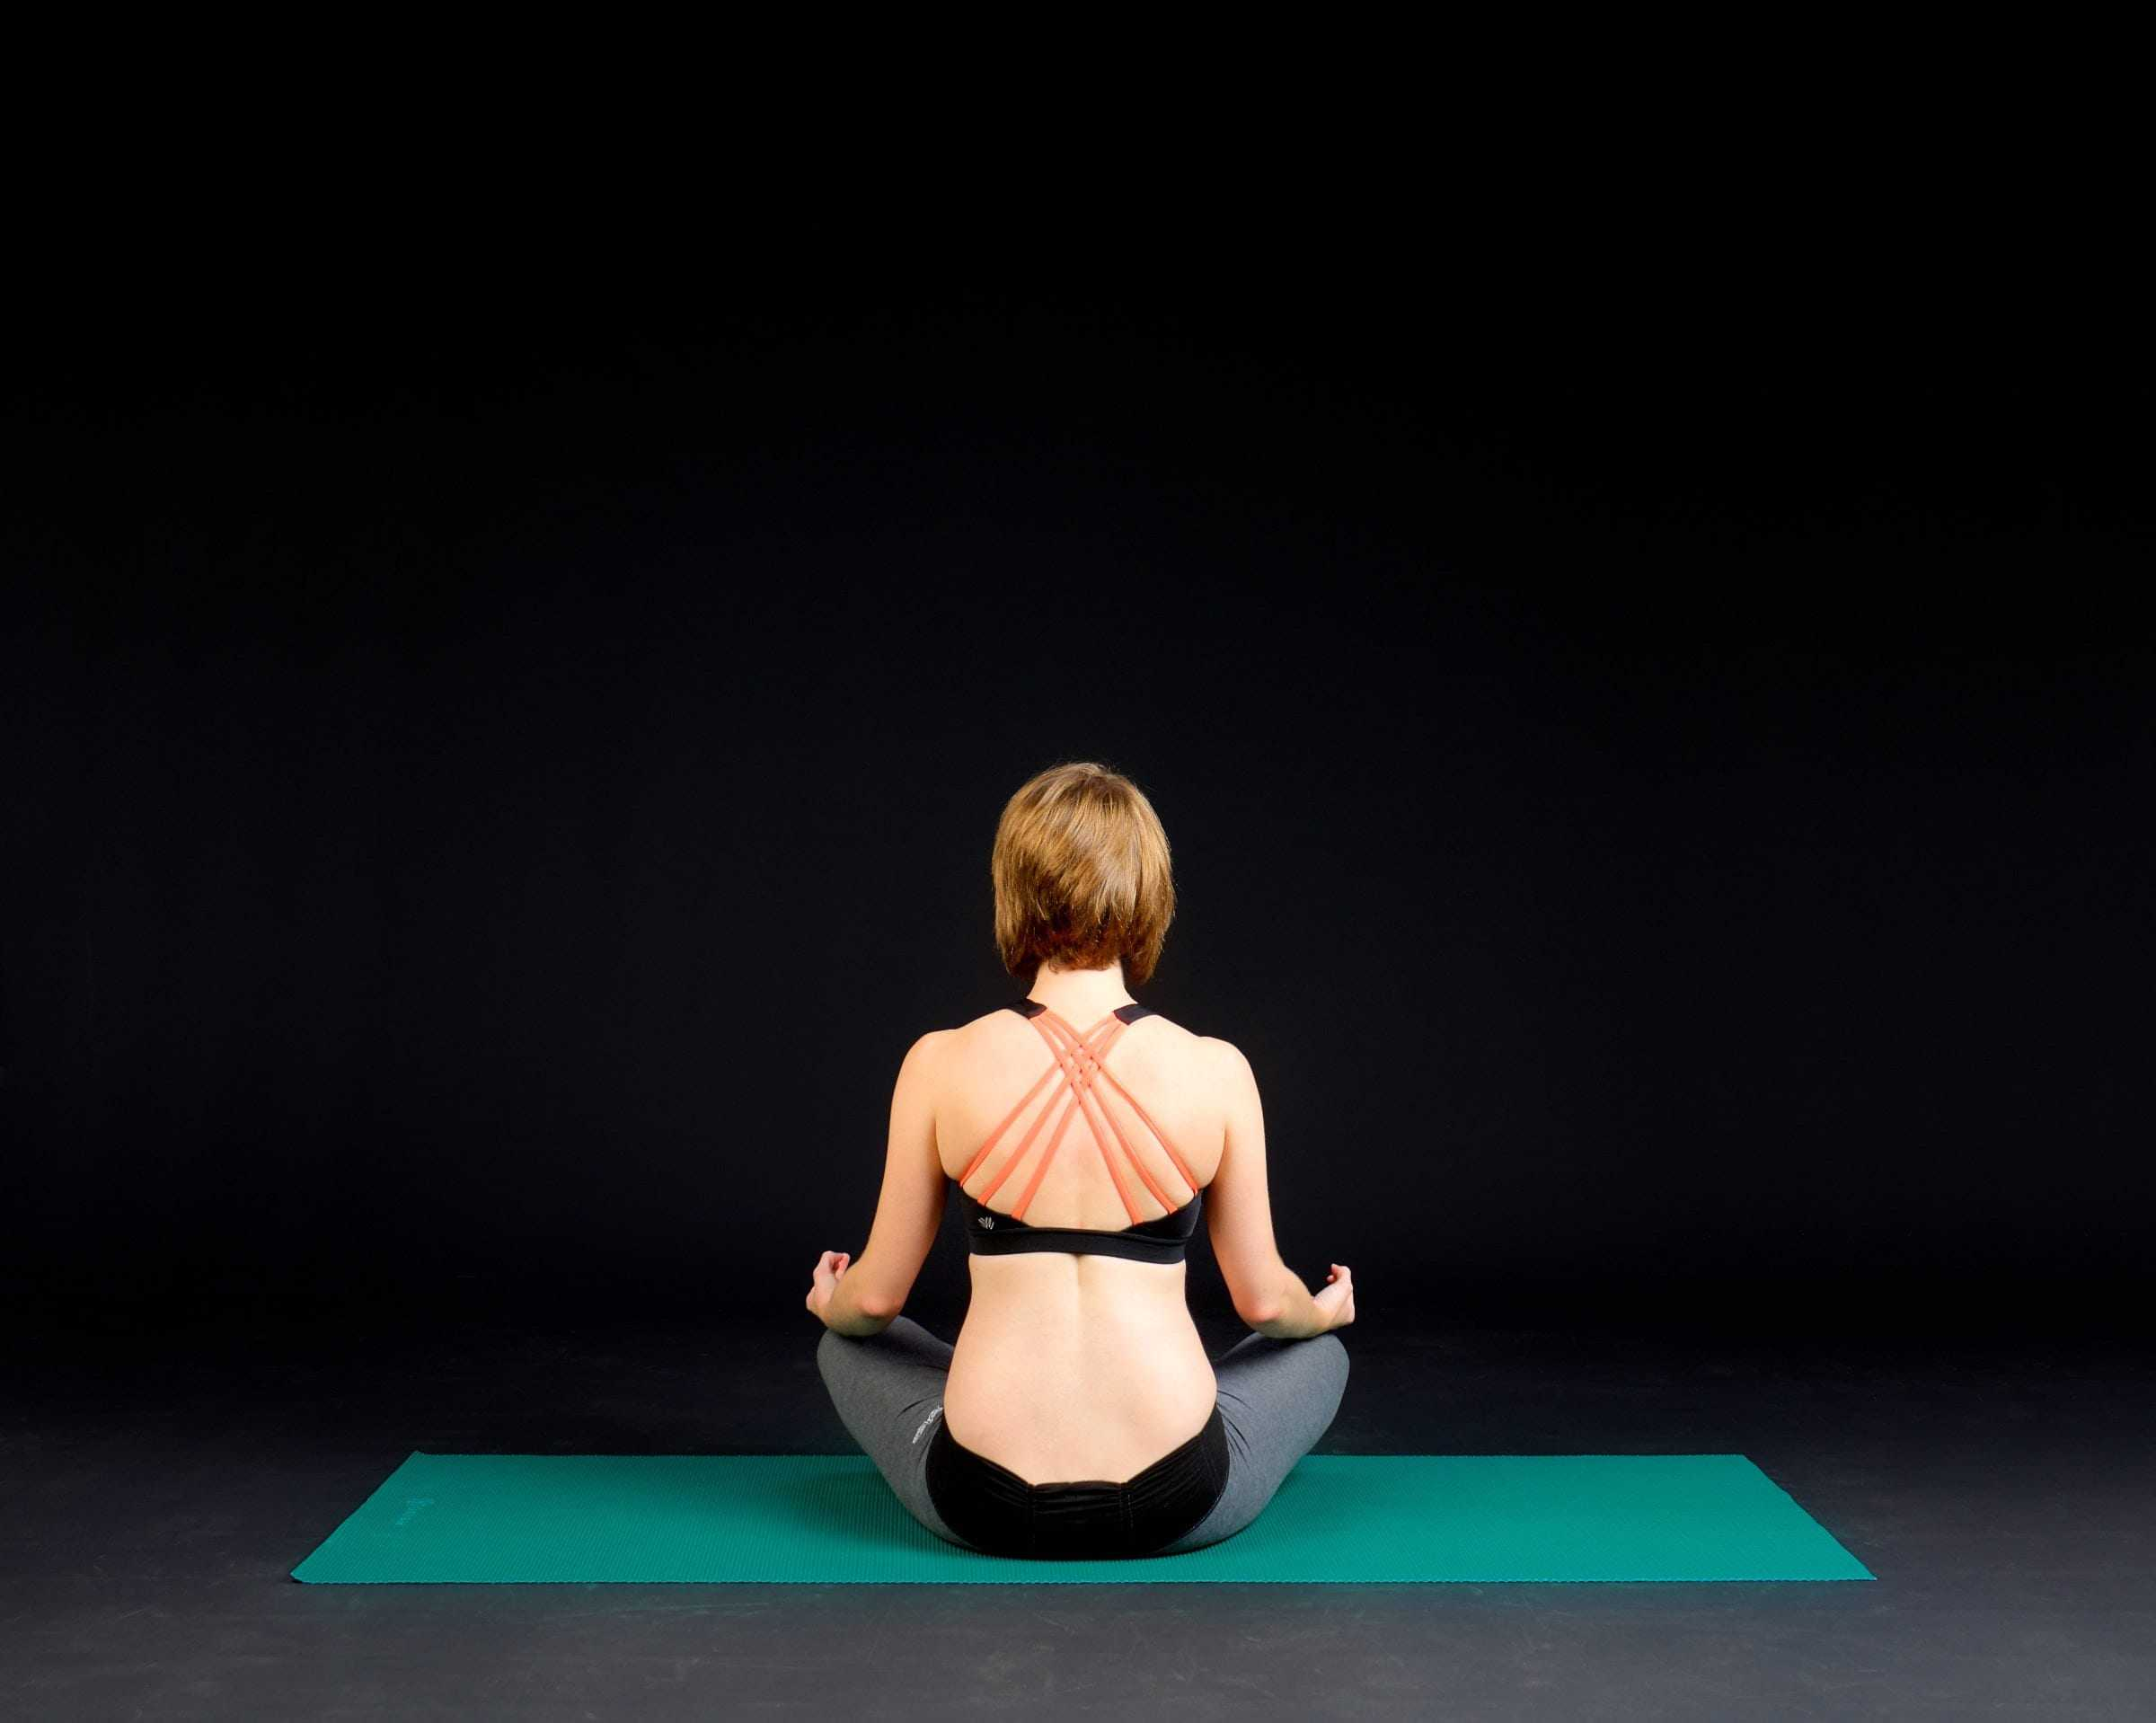 Exercise Mats For Comfortable Workouts